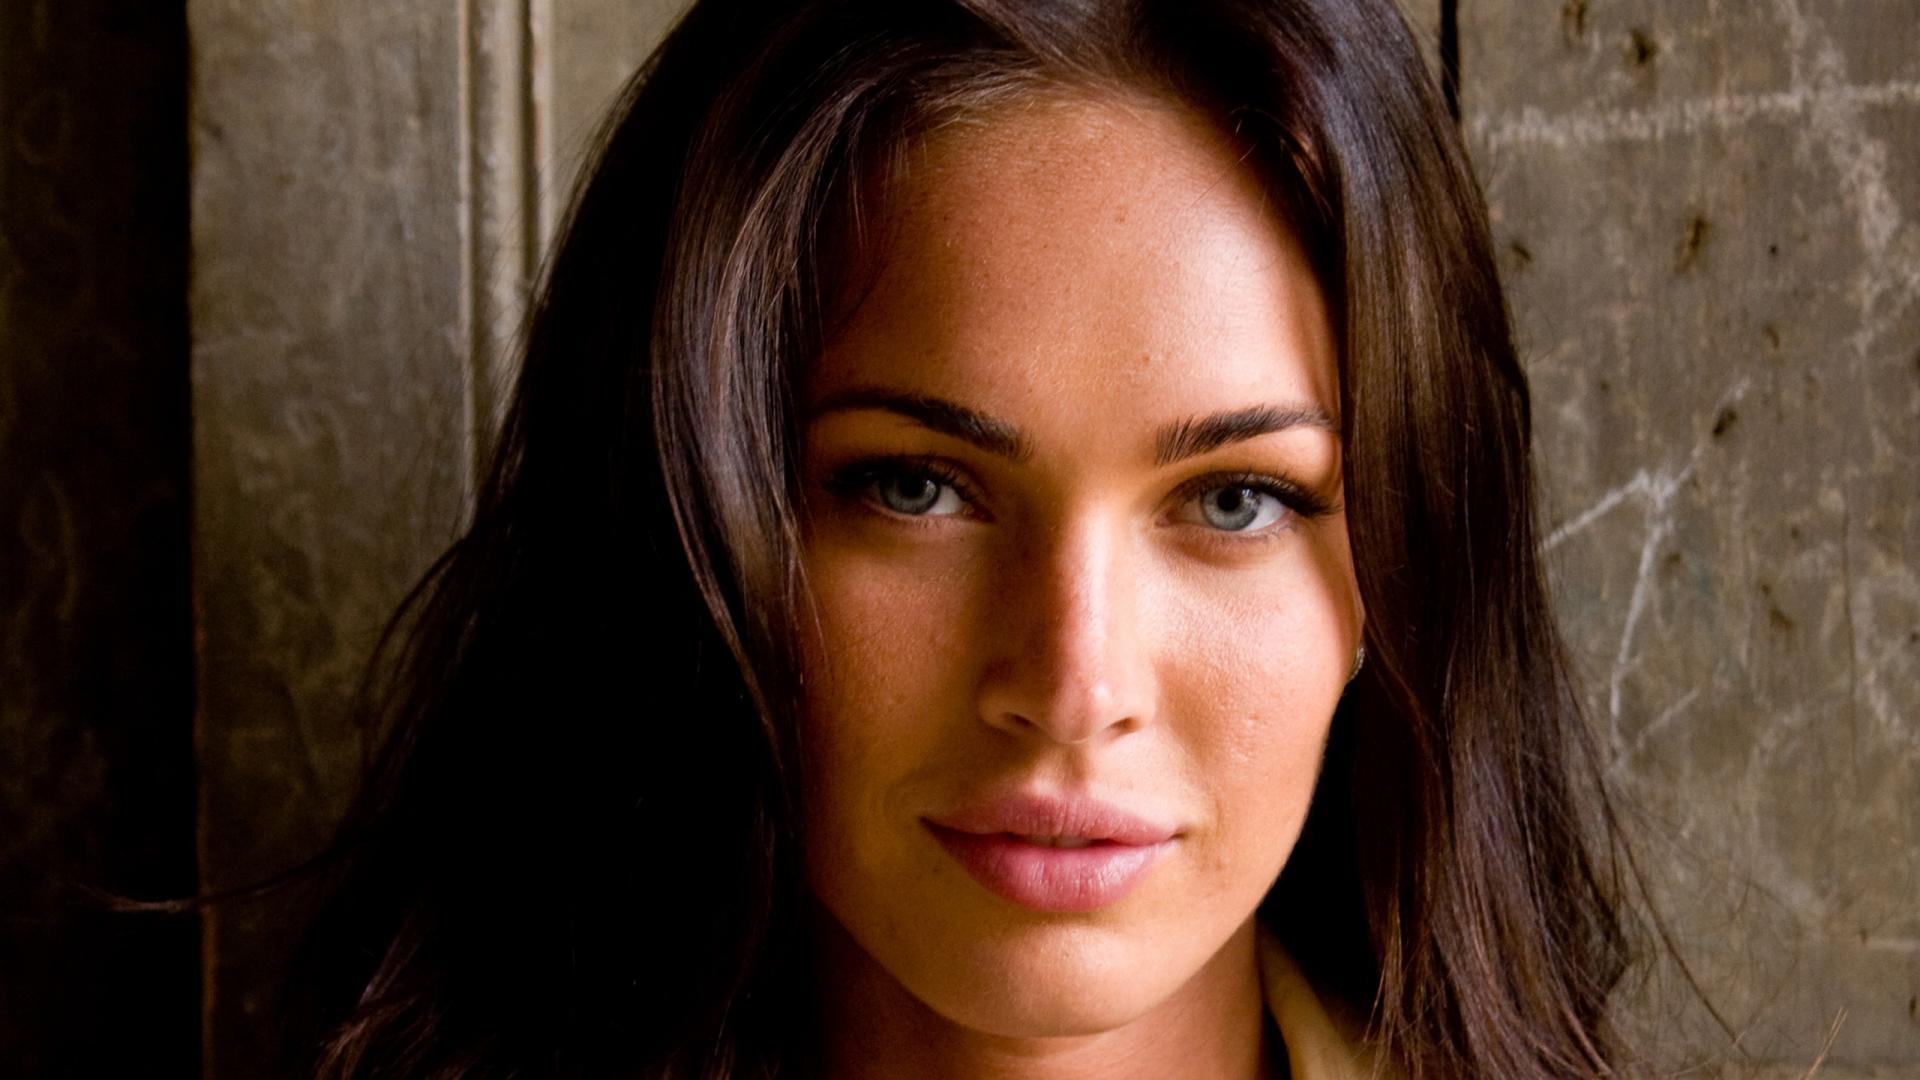 megan fox hd wallpapers - wallpaper cave